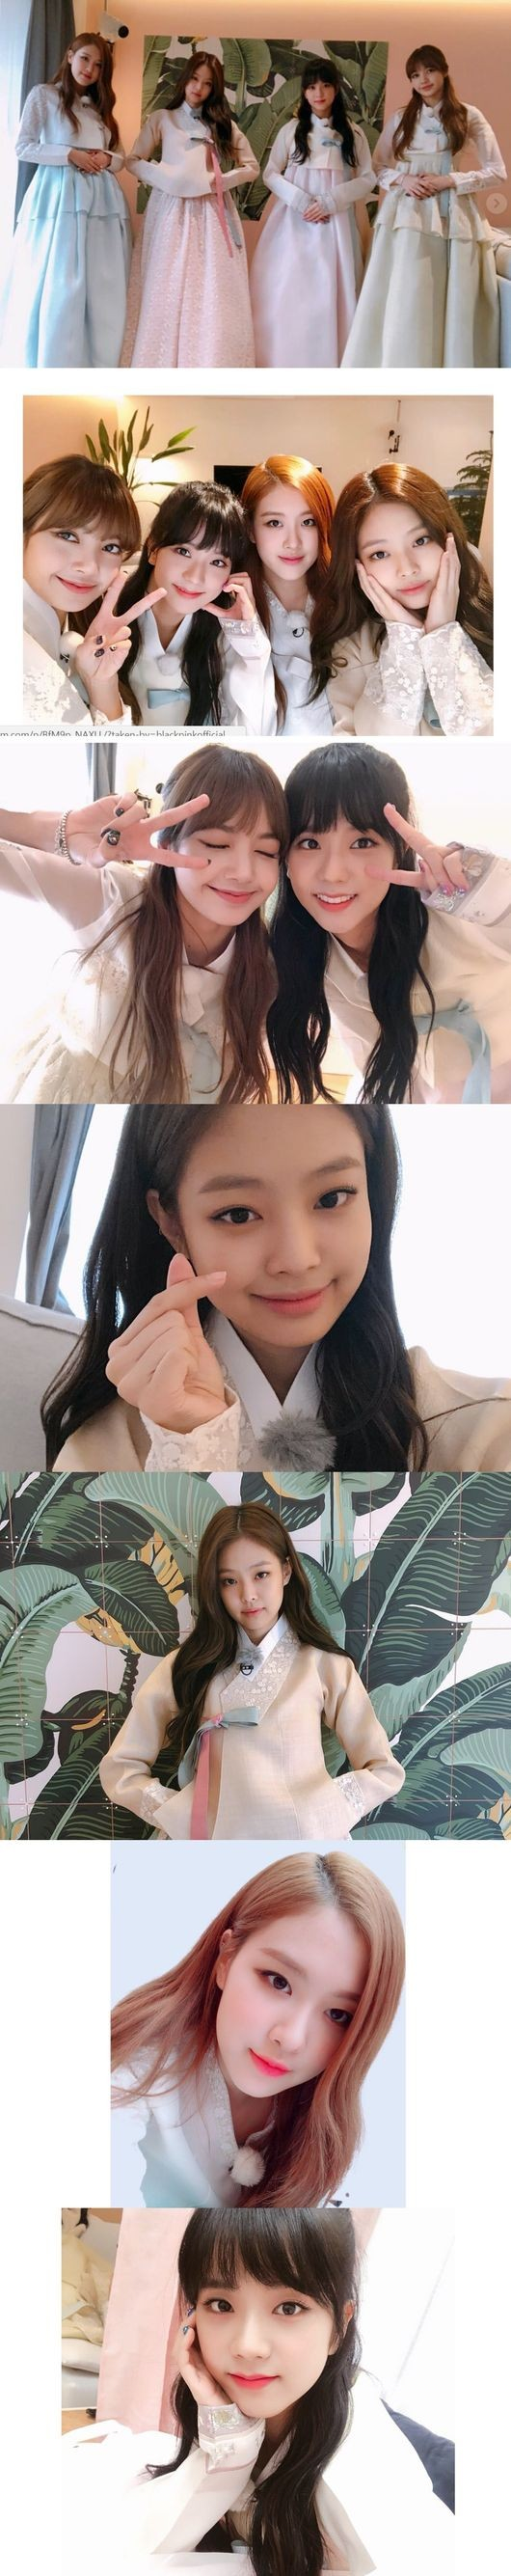 """Elegant Figures"" … BLACKPINK Releases Photos Dressed in Hanbok, Welcoming the Lunar New Year"